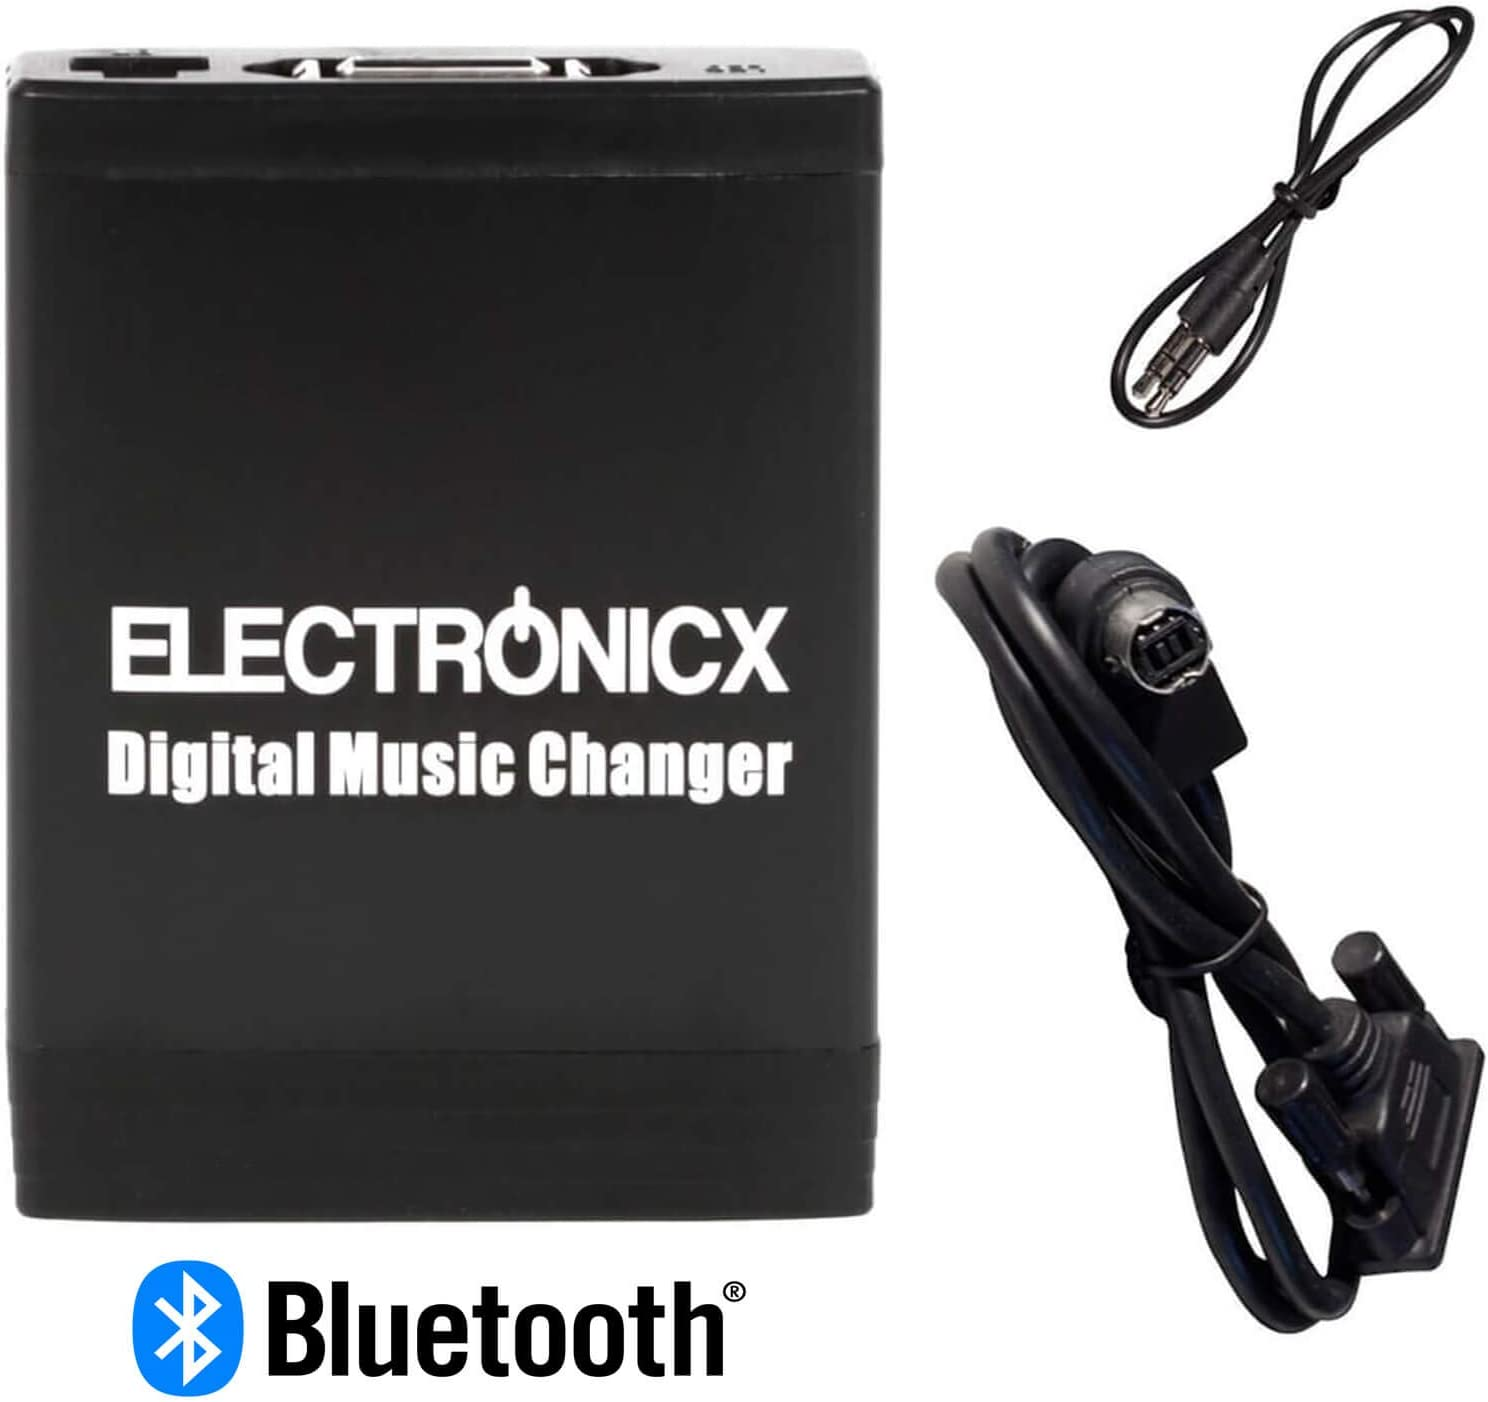 Electronicx Elec-M06-AI-NET-BT Adaptador Musica para Coche USB, SD MP3 AUX Bluetooth Kit Manos Libres para Alpine AI-Net